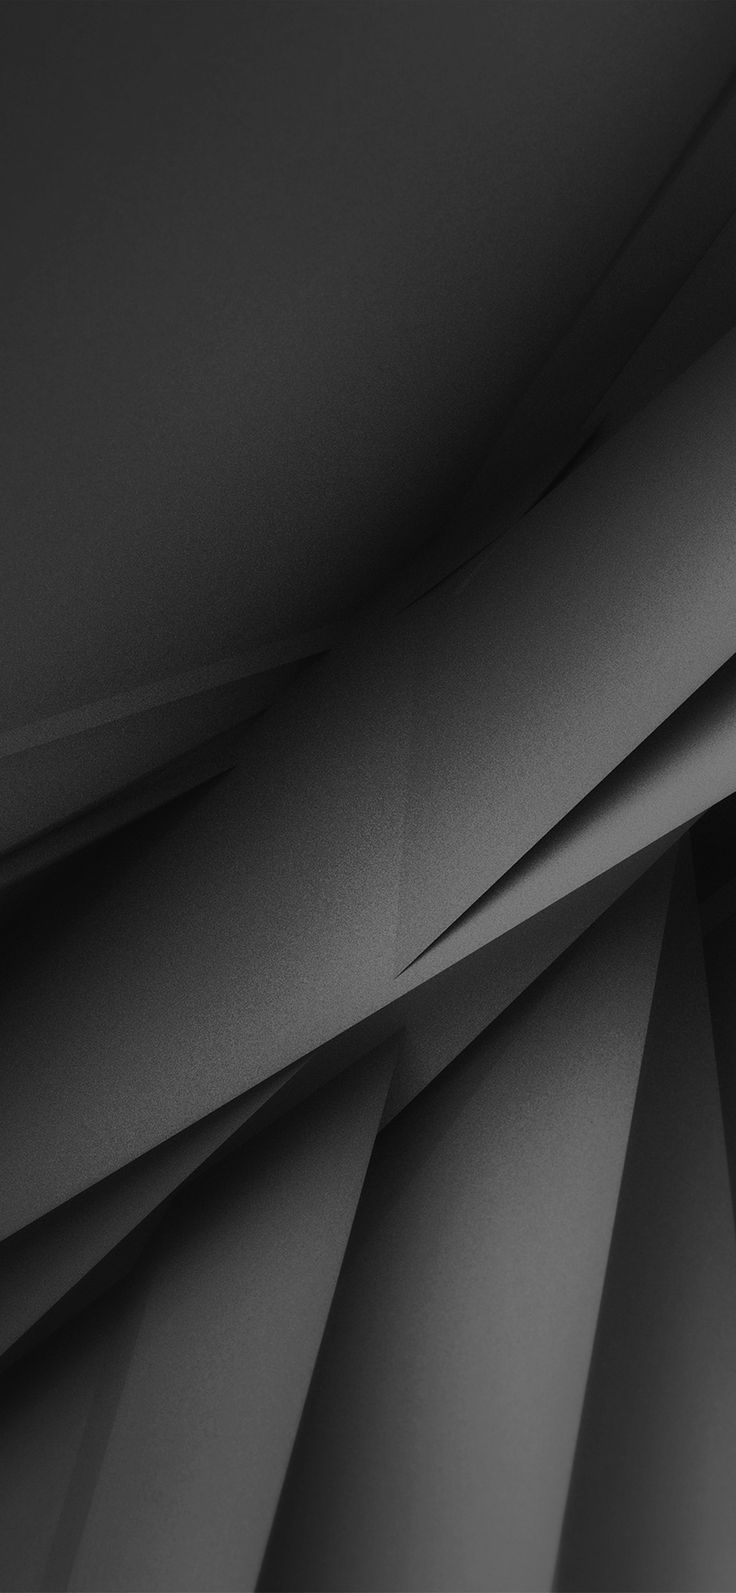 Iphone X Wallpaper Vs30 Abstract Background Line Shape Gray